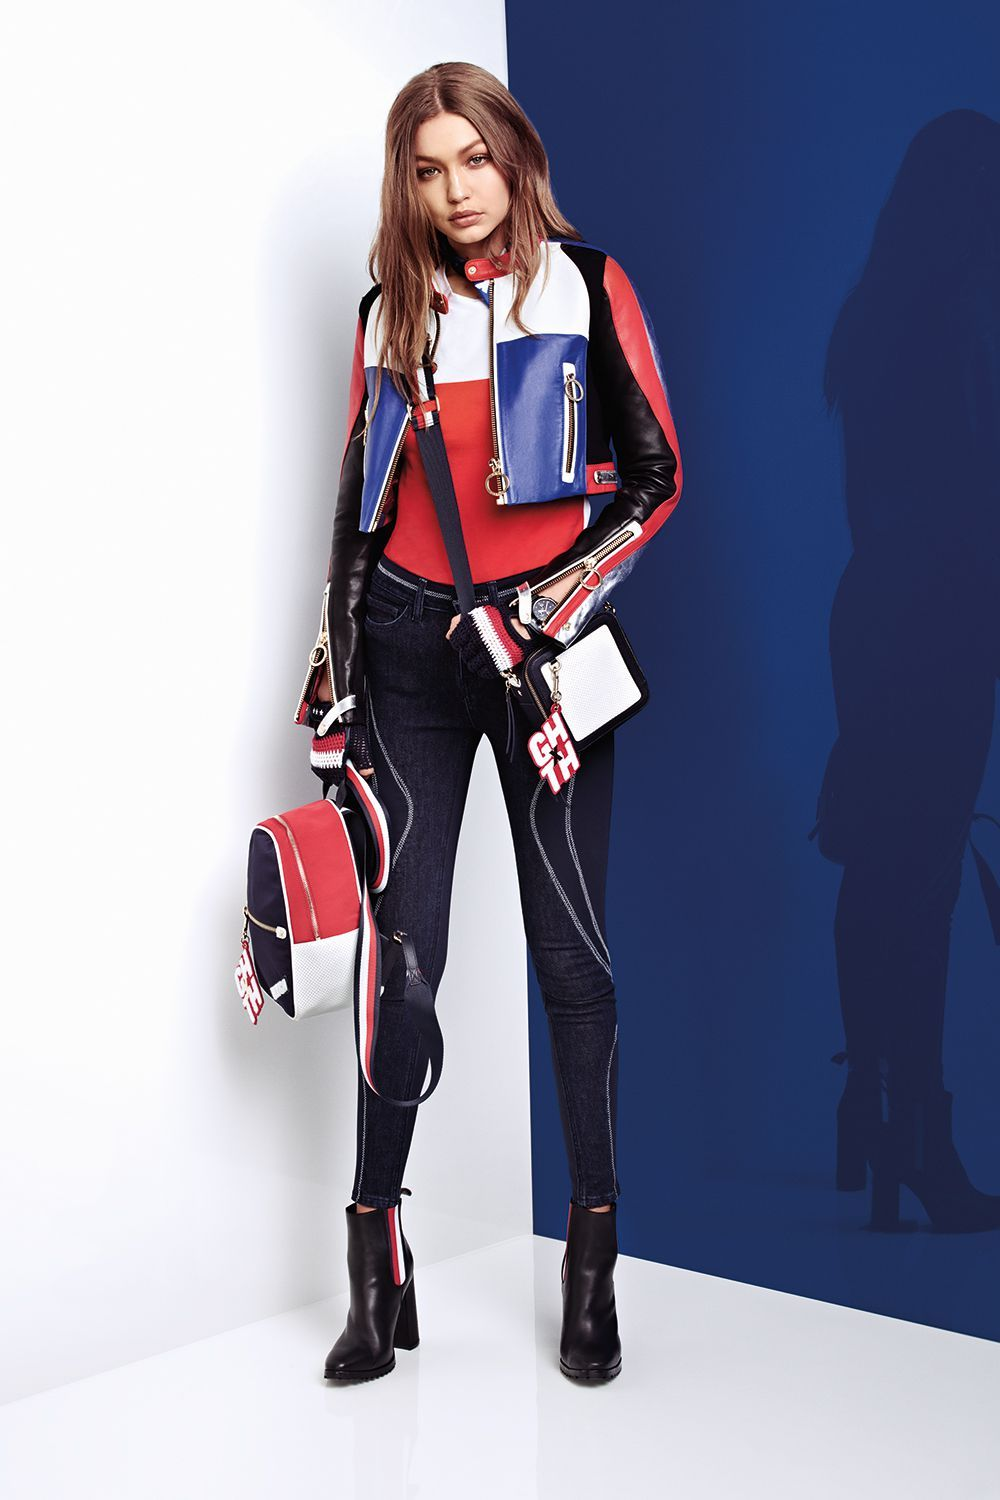 88dbae86c63c68 Gigi Hadid and Tommy Hilfiger Unveil a New Racing-Inspired Collection